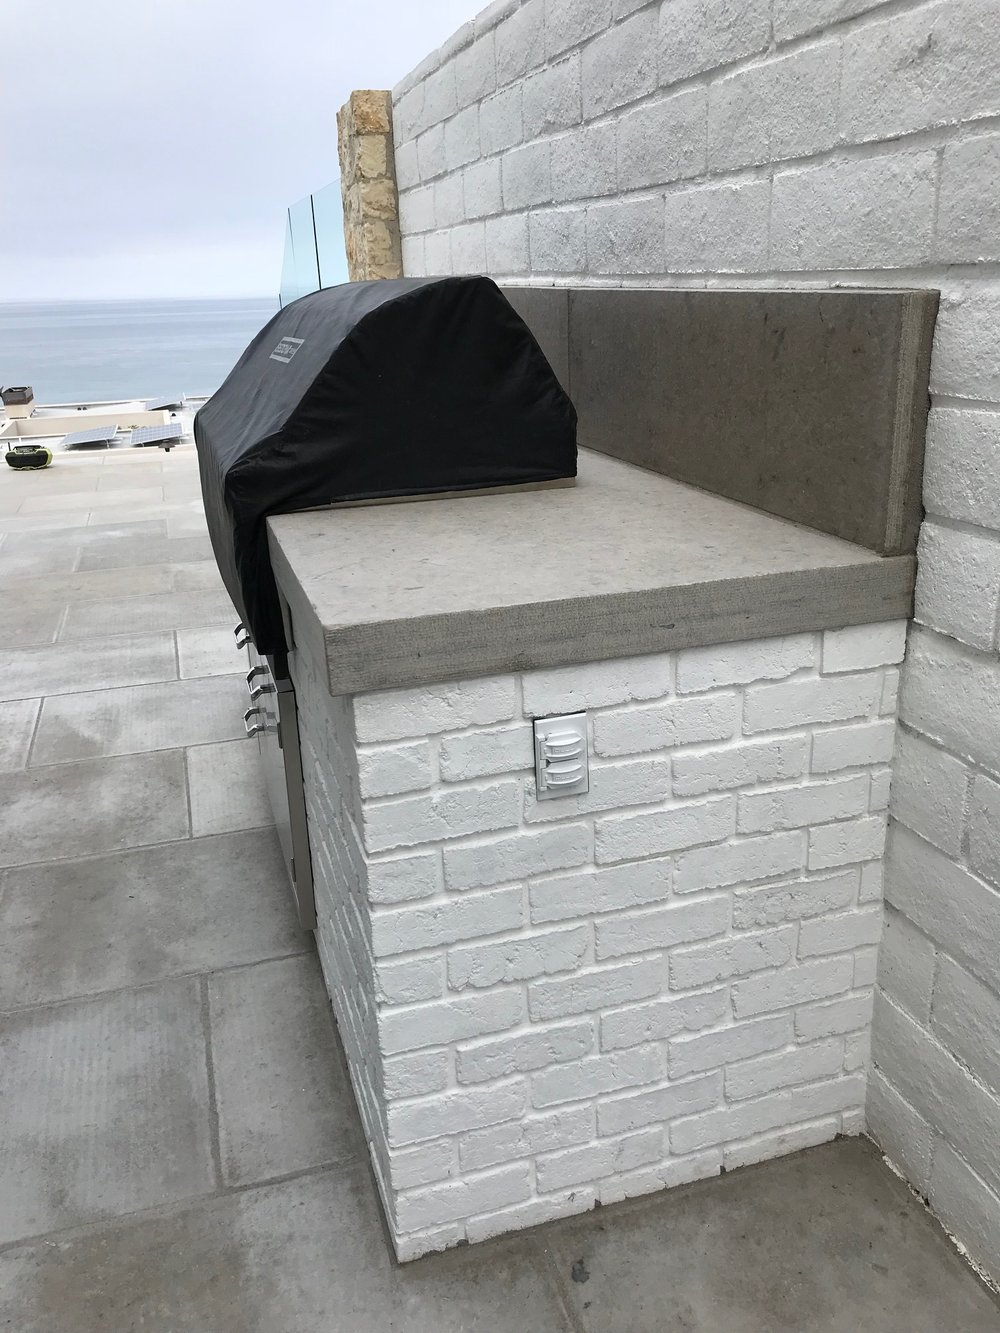 Outdoor kitchen construction in Dana Point, California, United States